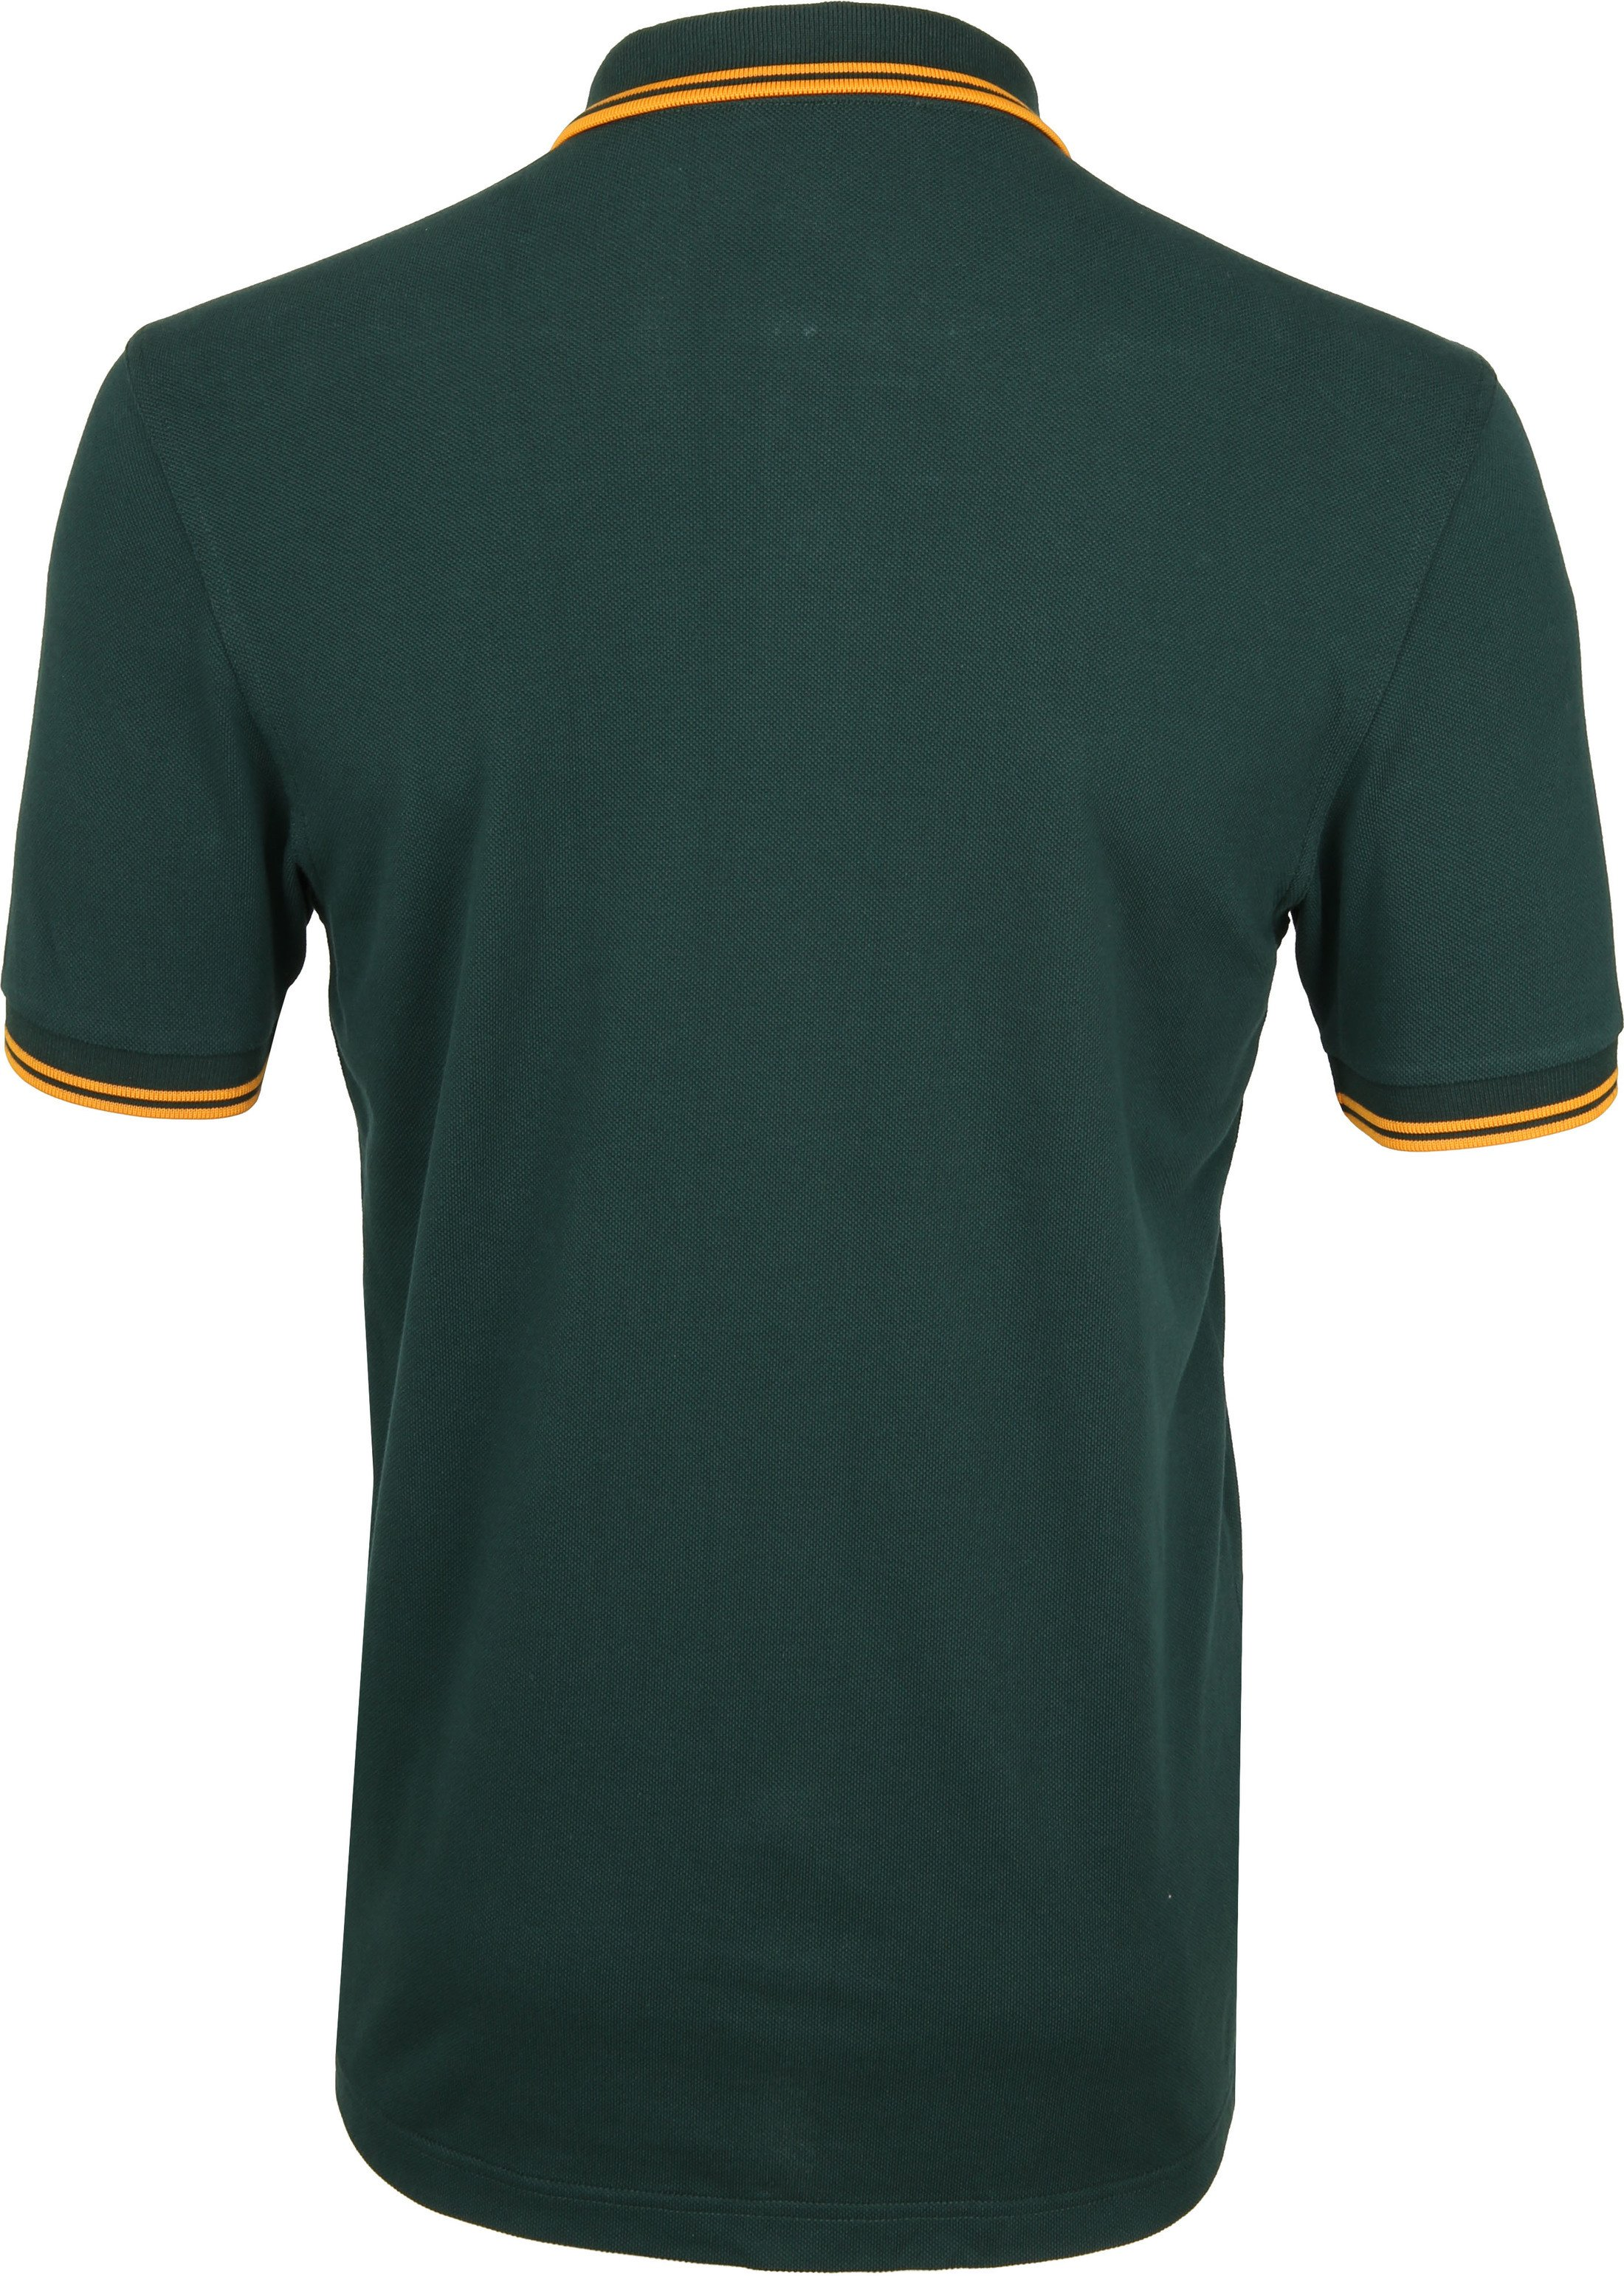 Fred Perry Poloshirt Green F40 foto 2